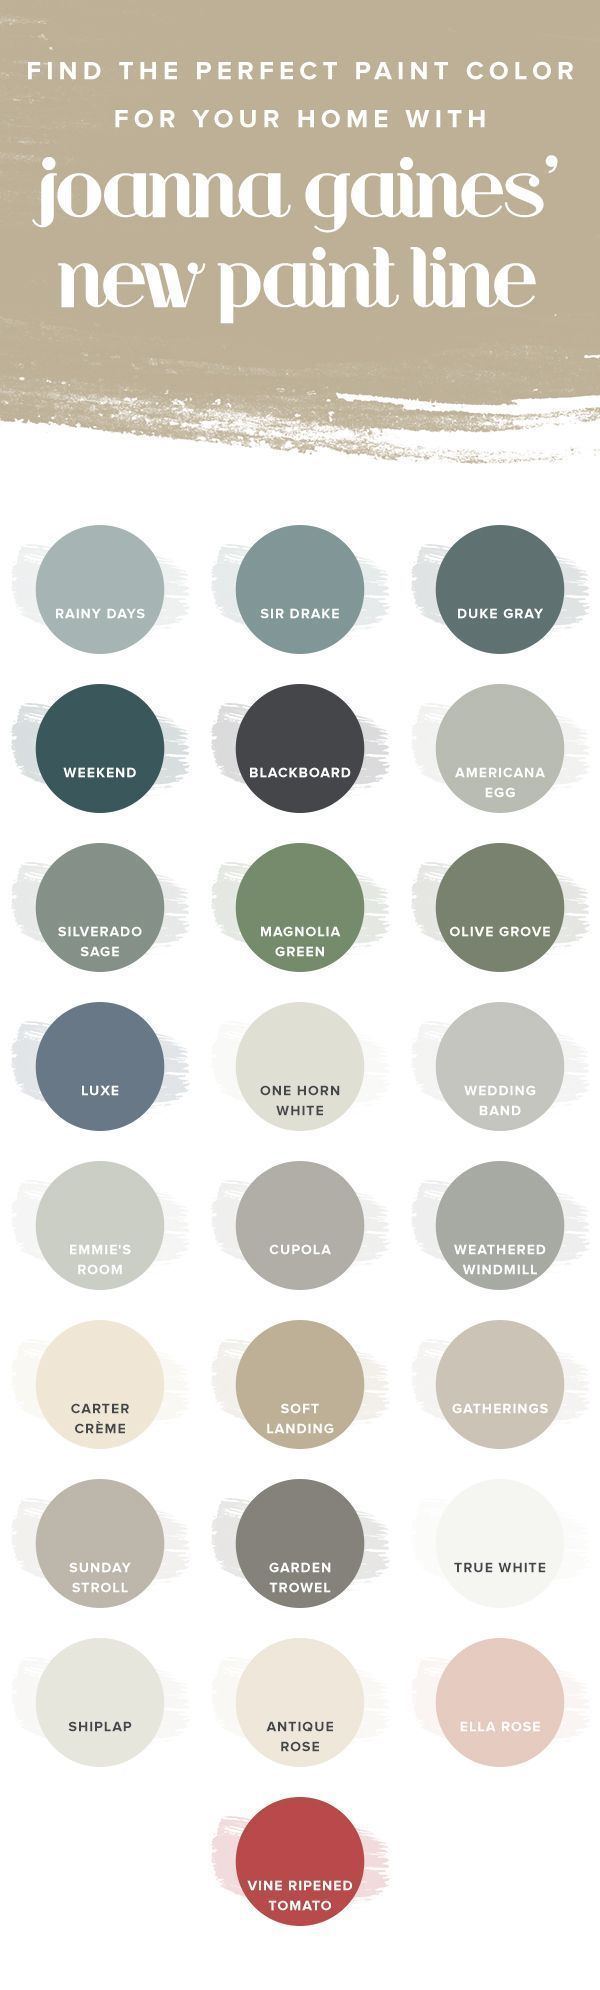 "A fresh coat of paint might just be the secret to instantly making your home feel refreshed. <a href=""/joannagaines_/"" title=""Joanna Gaines"">@Joanna Gaines</a> has a new paint line with beautiful color ideas for your home. From the living room to the bedroom to the exterior, take a look for some paint color ideas and inspiration."